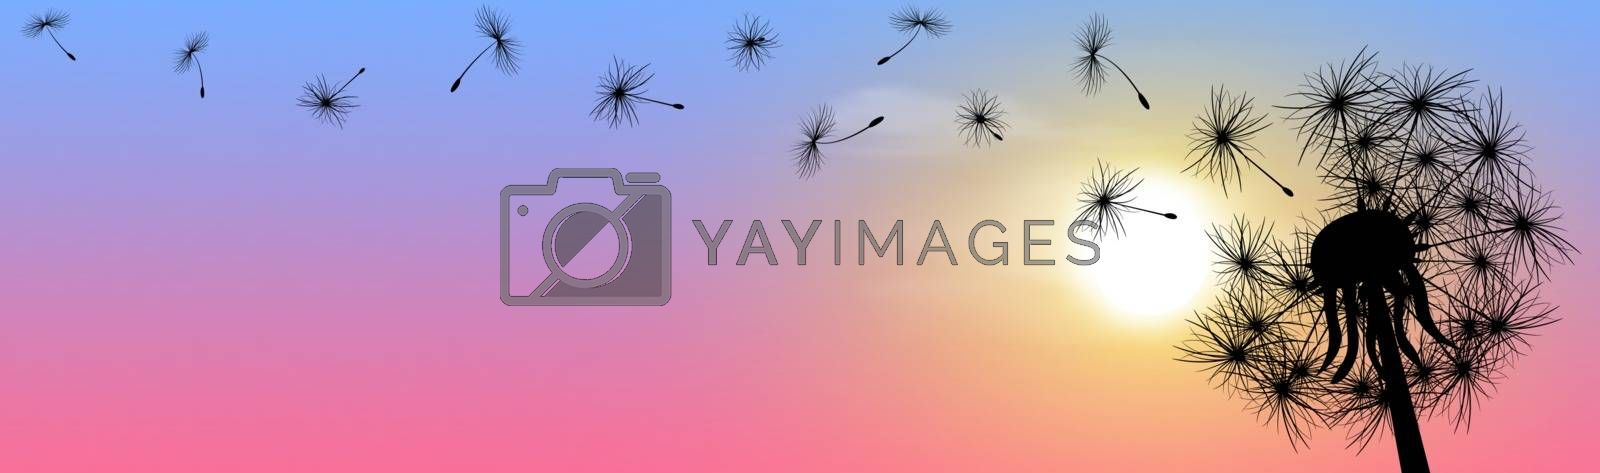 Royalty free image of Fluffy dandelion sun sunset sky banner by liolle